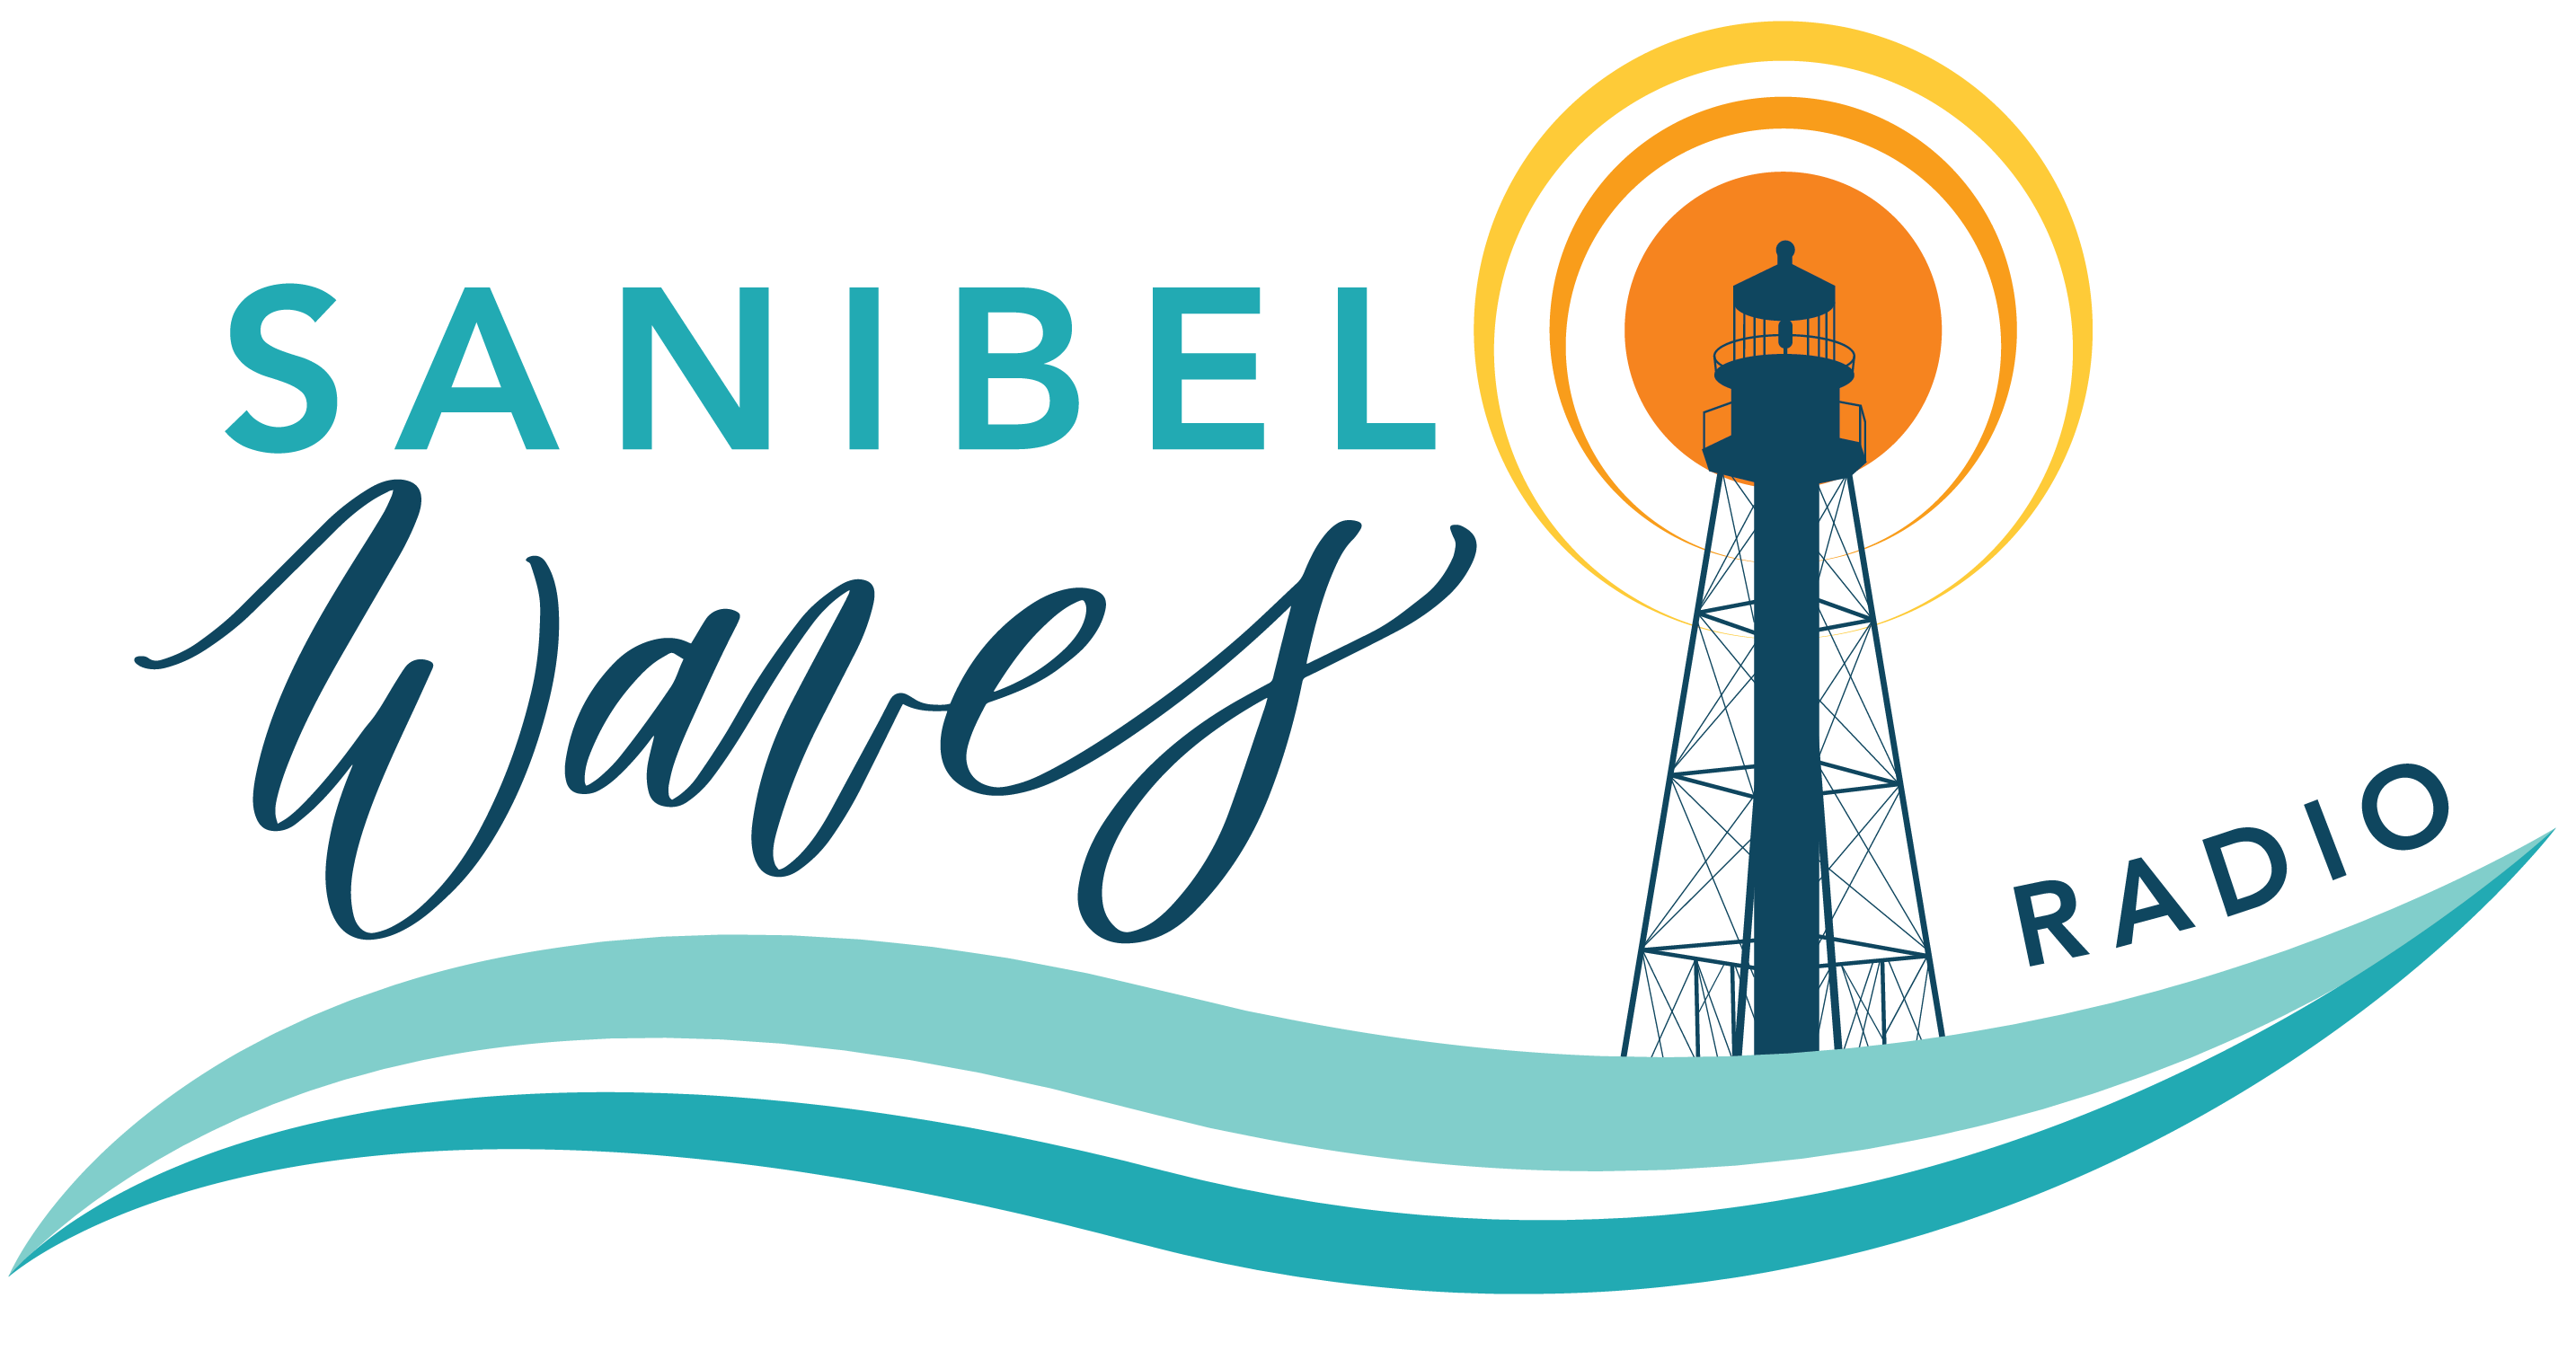 Sanibel Waves Radio